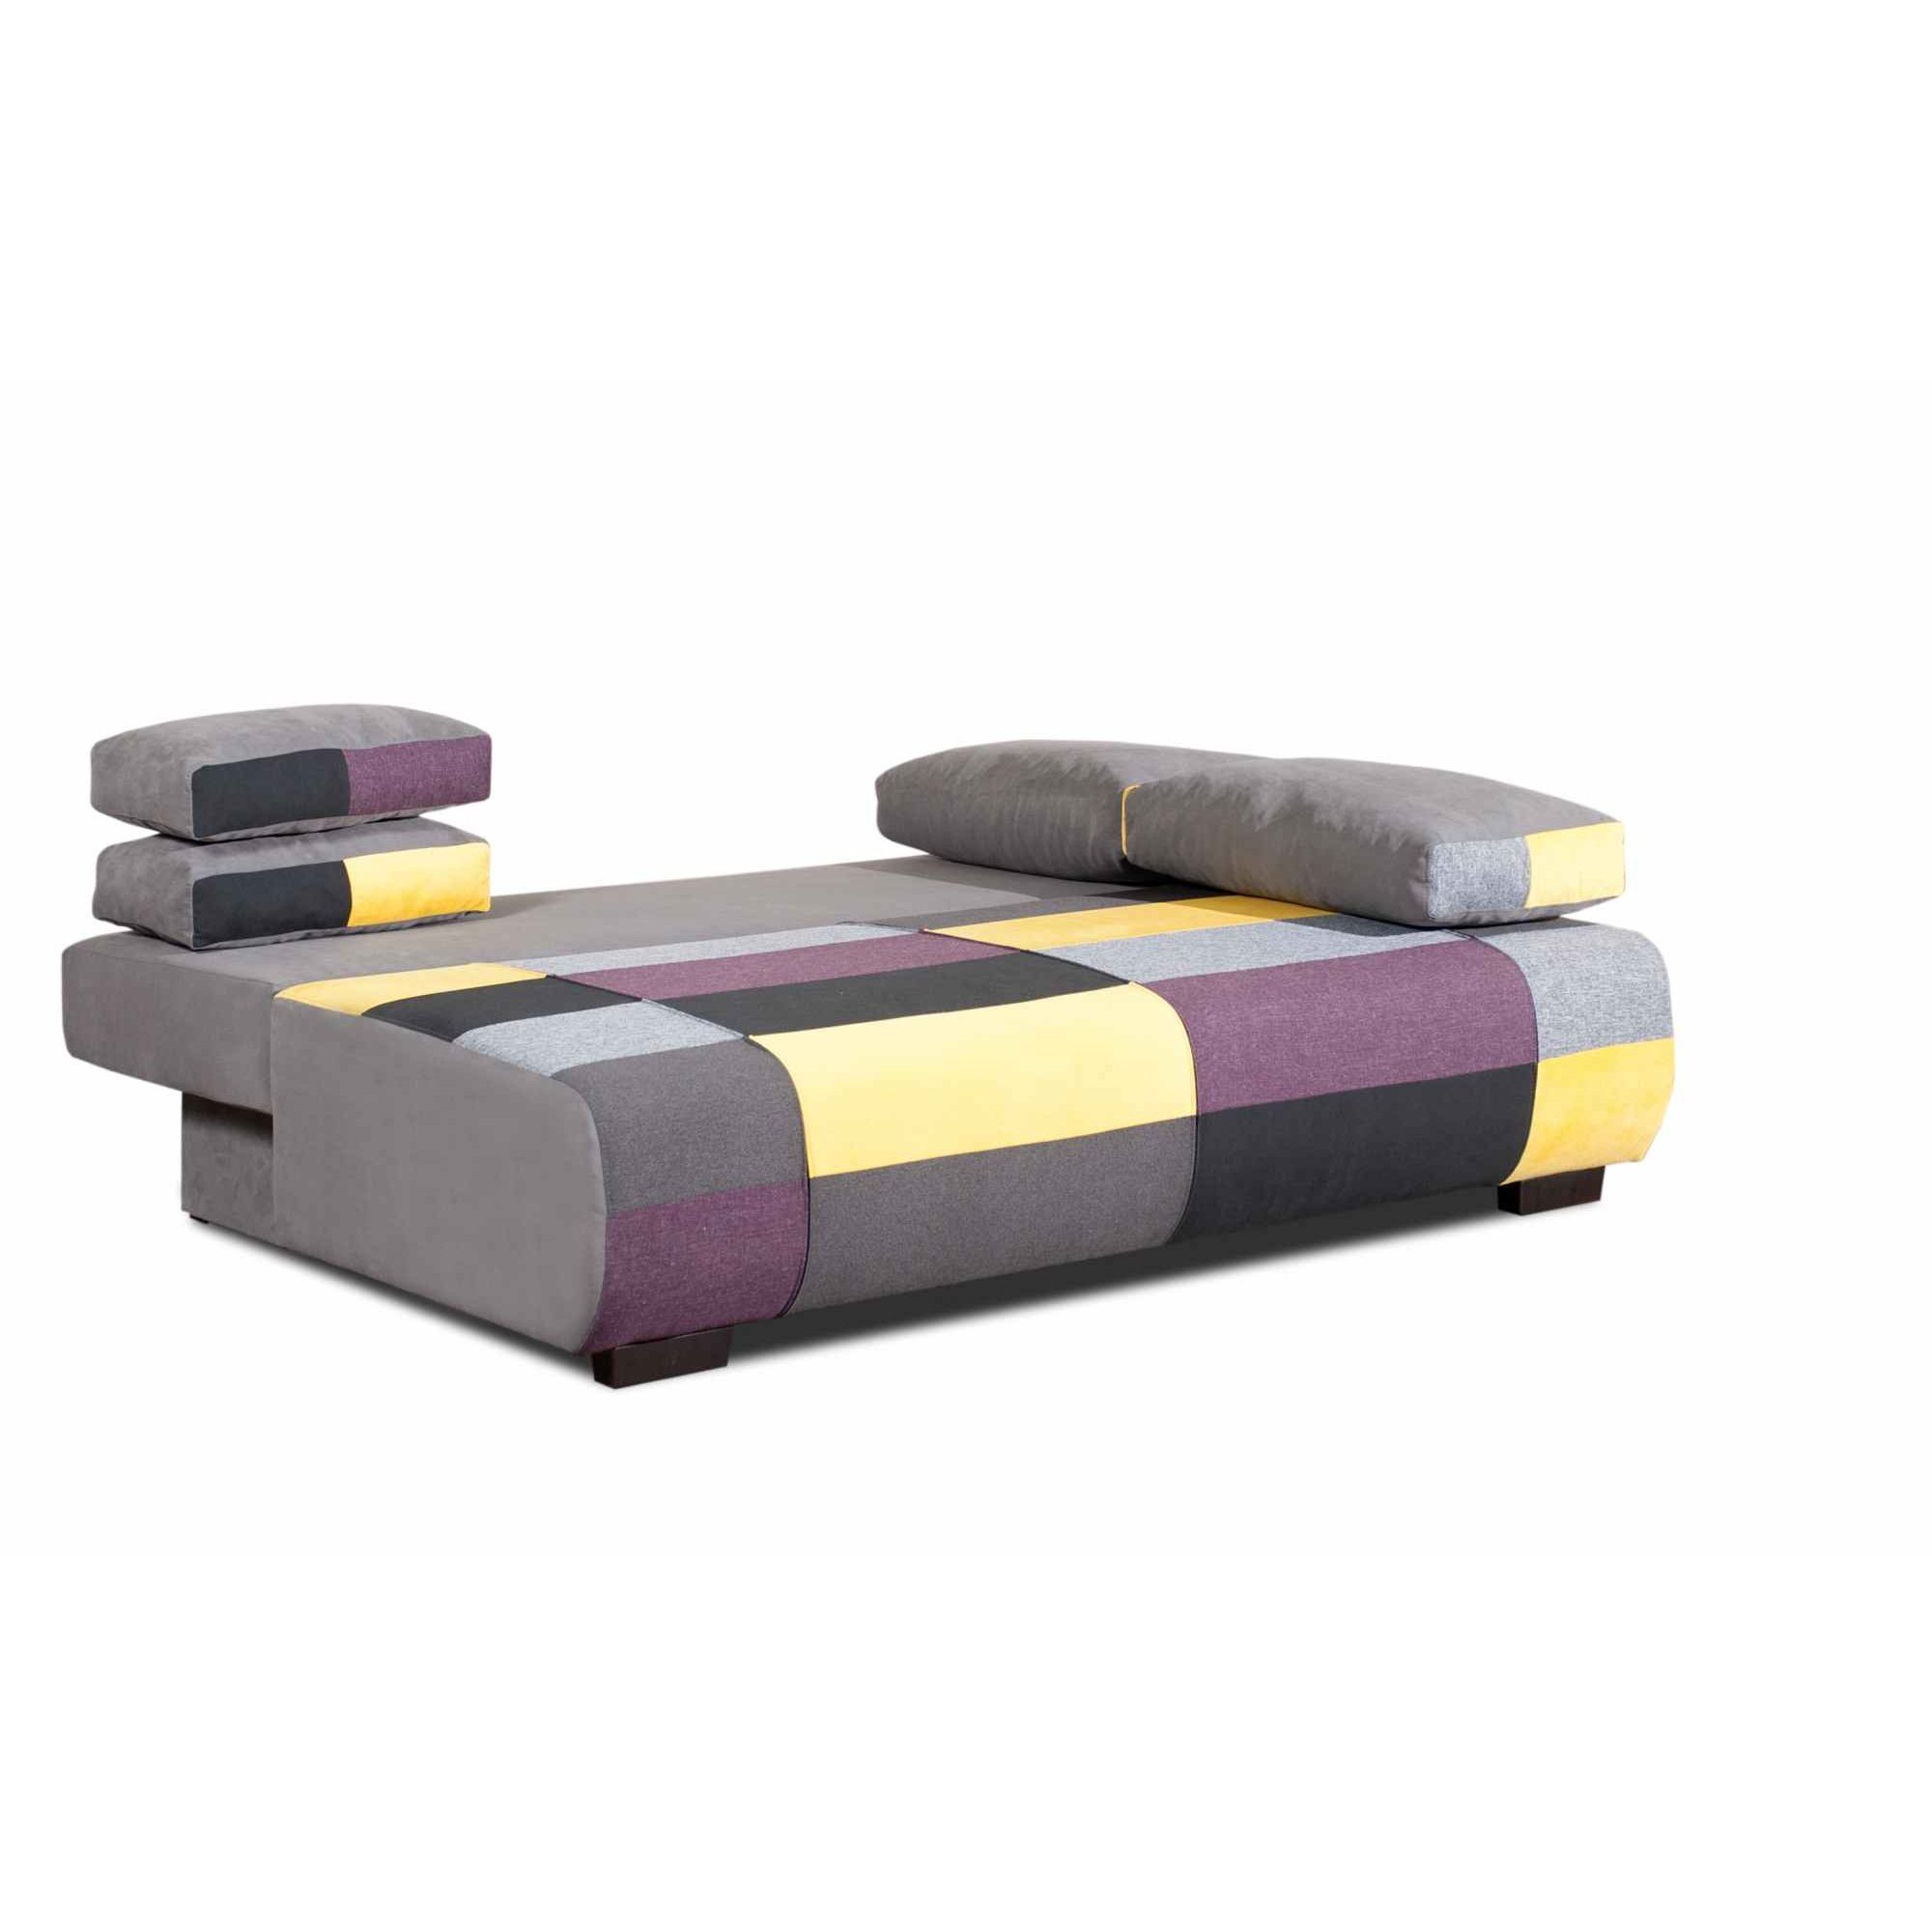 Deco in paris canape 3 places convertible en tissu jaune for Canape 3 places tissu